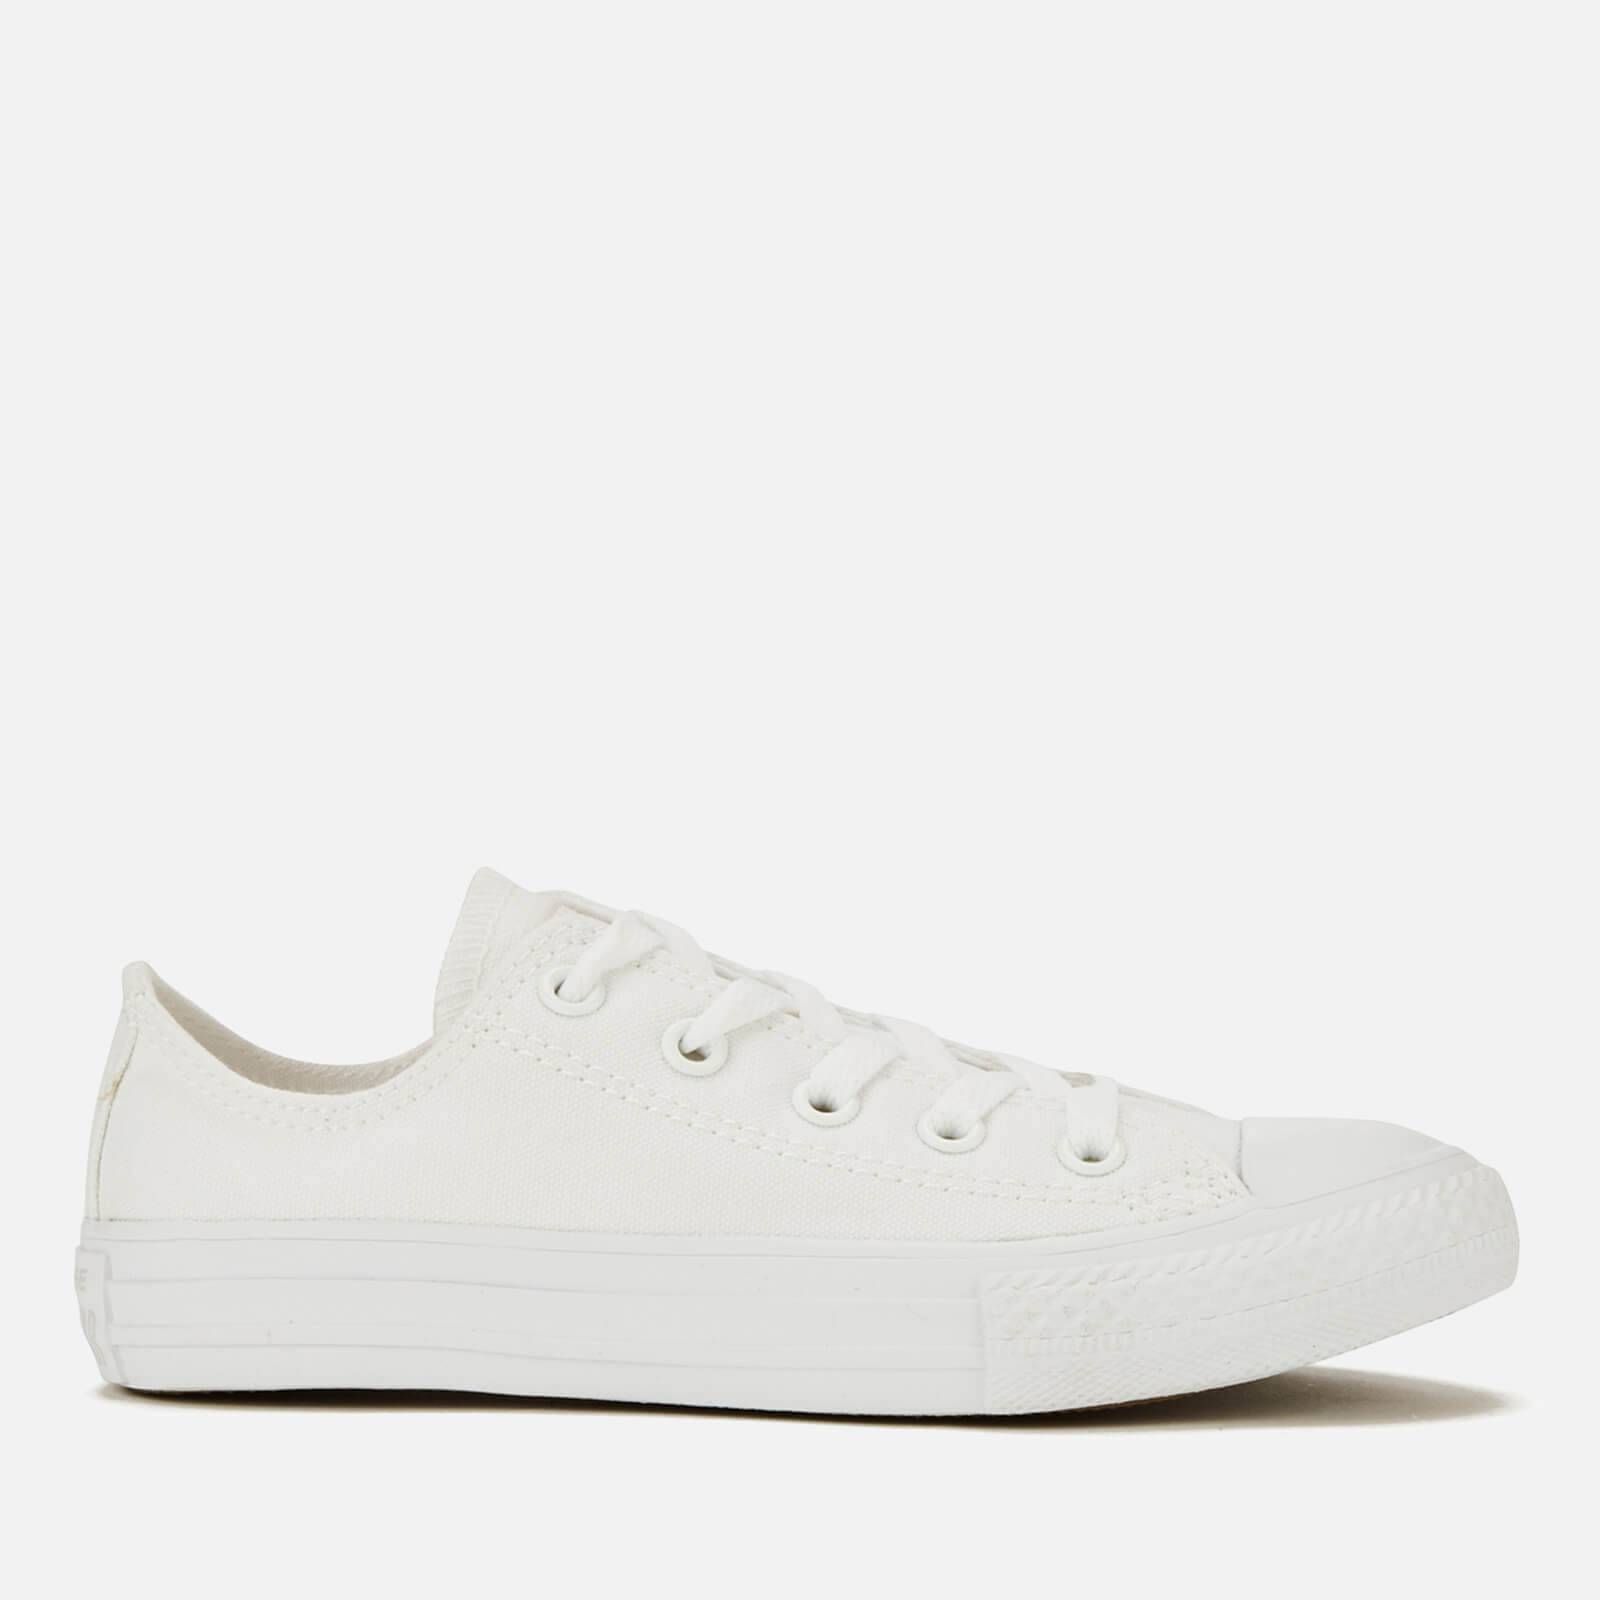 Converse Kids' Chuck Taylor All Star Canvas Ox Trainers - White - UK 10.5 Kids - White